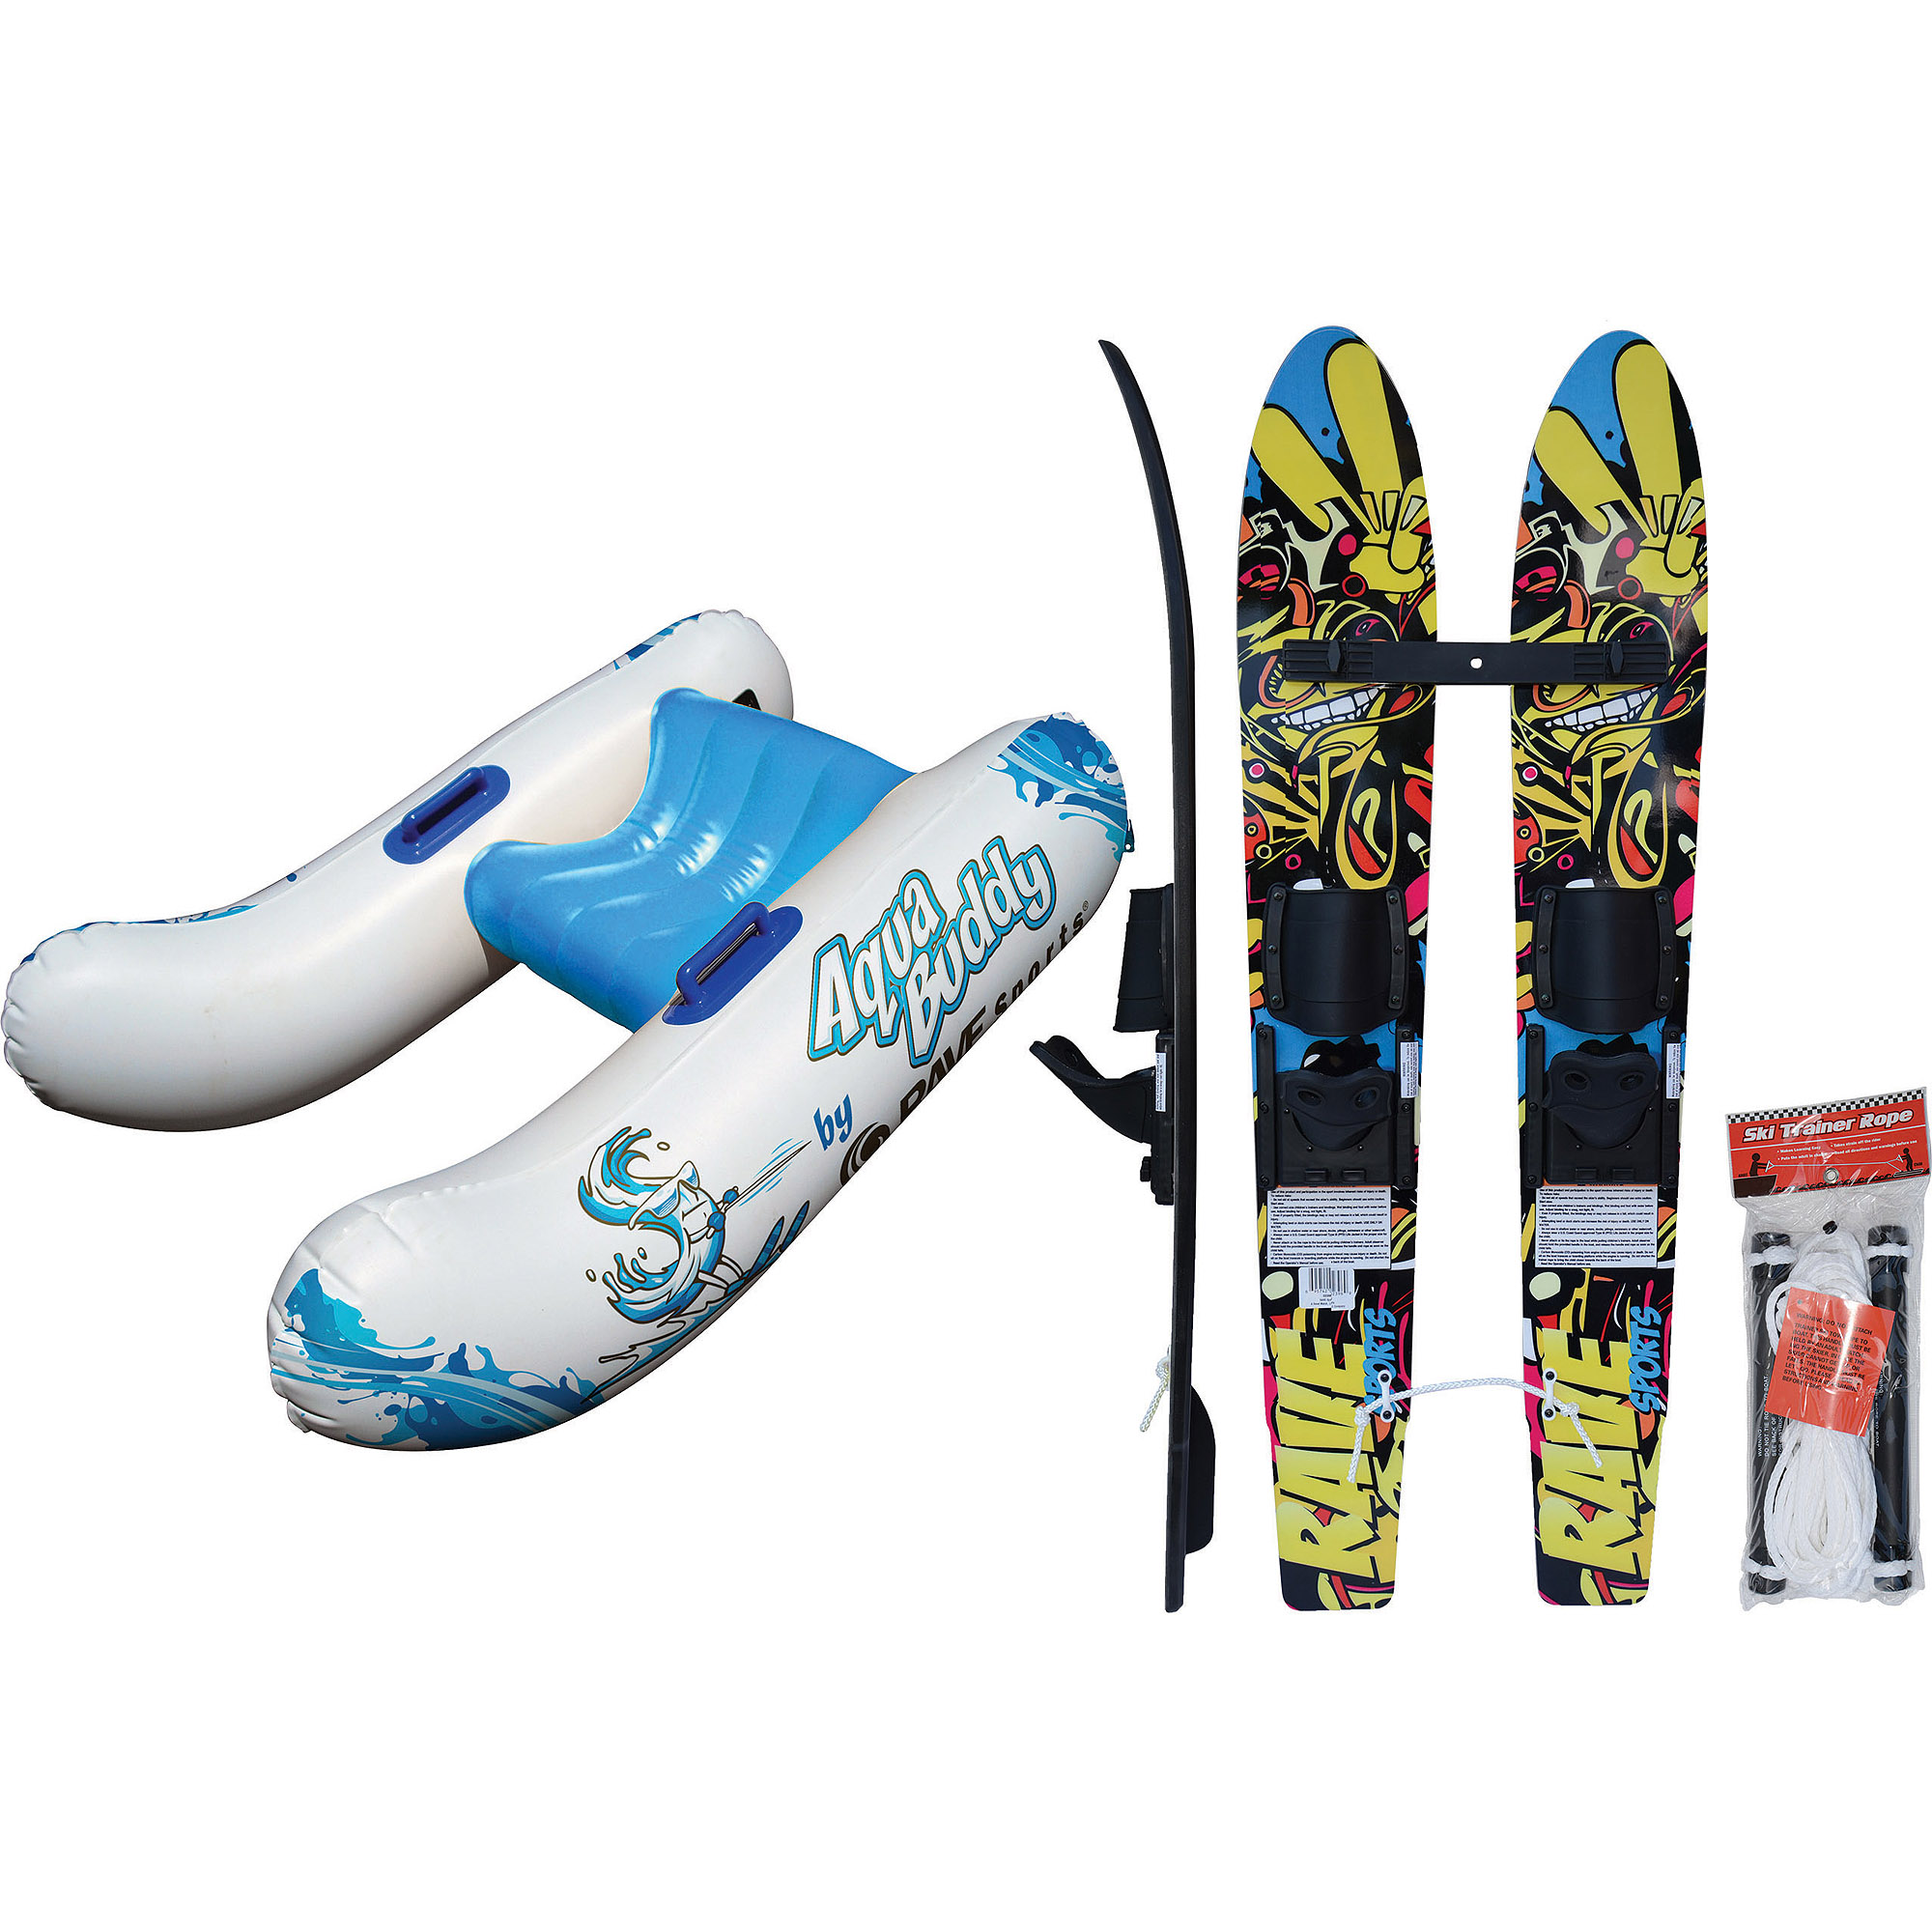 Click here to buy Rave Sports Water Ski Starter Package by Rave Sports.